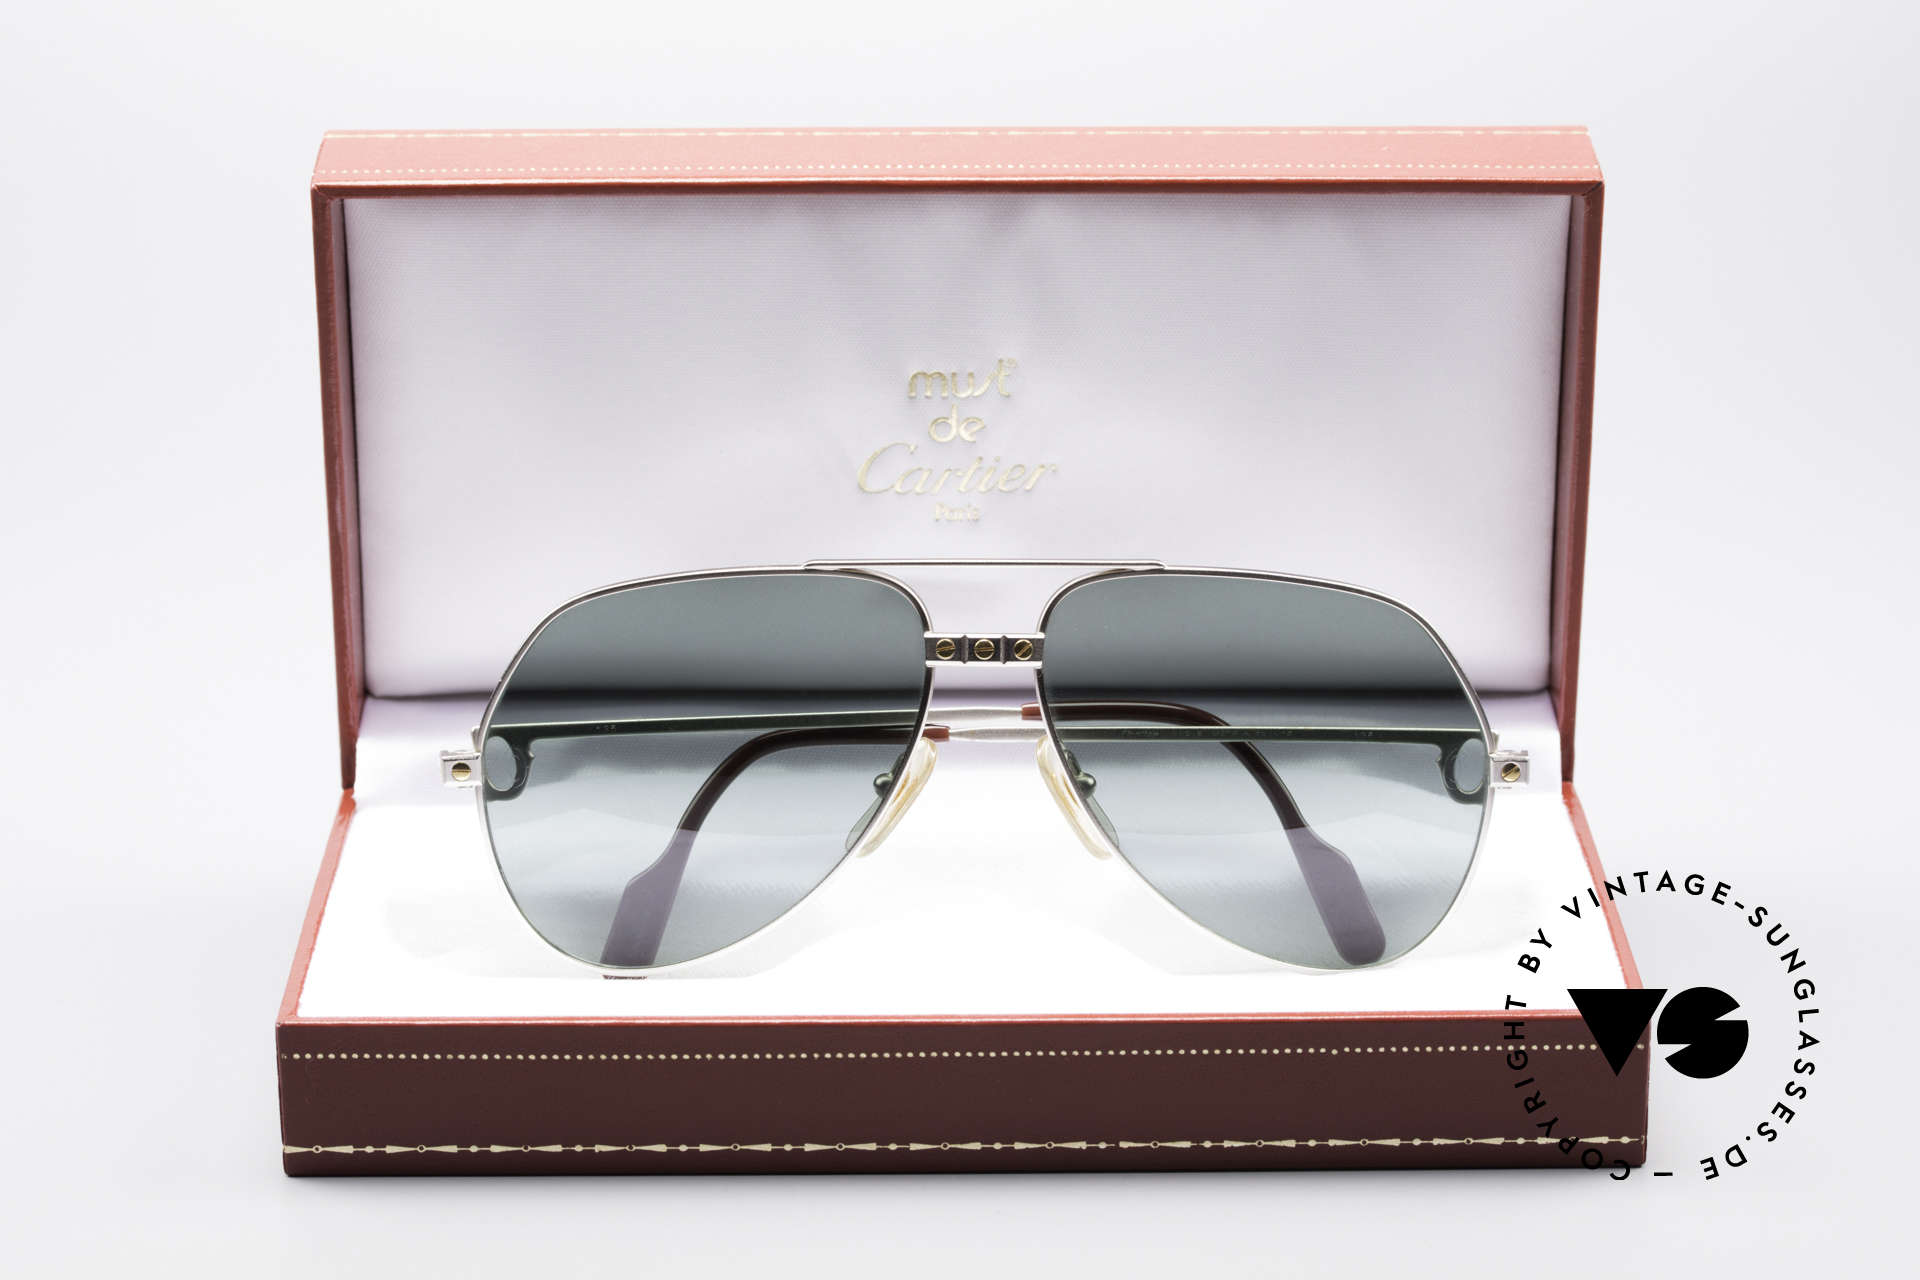 Cartier Vendome Santos - M Rare Luxury Palladium Finish, unworn rarity with orig. packing; hard to find these days, Made for Men